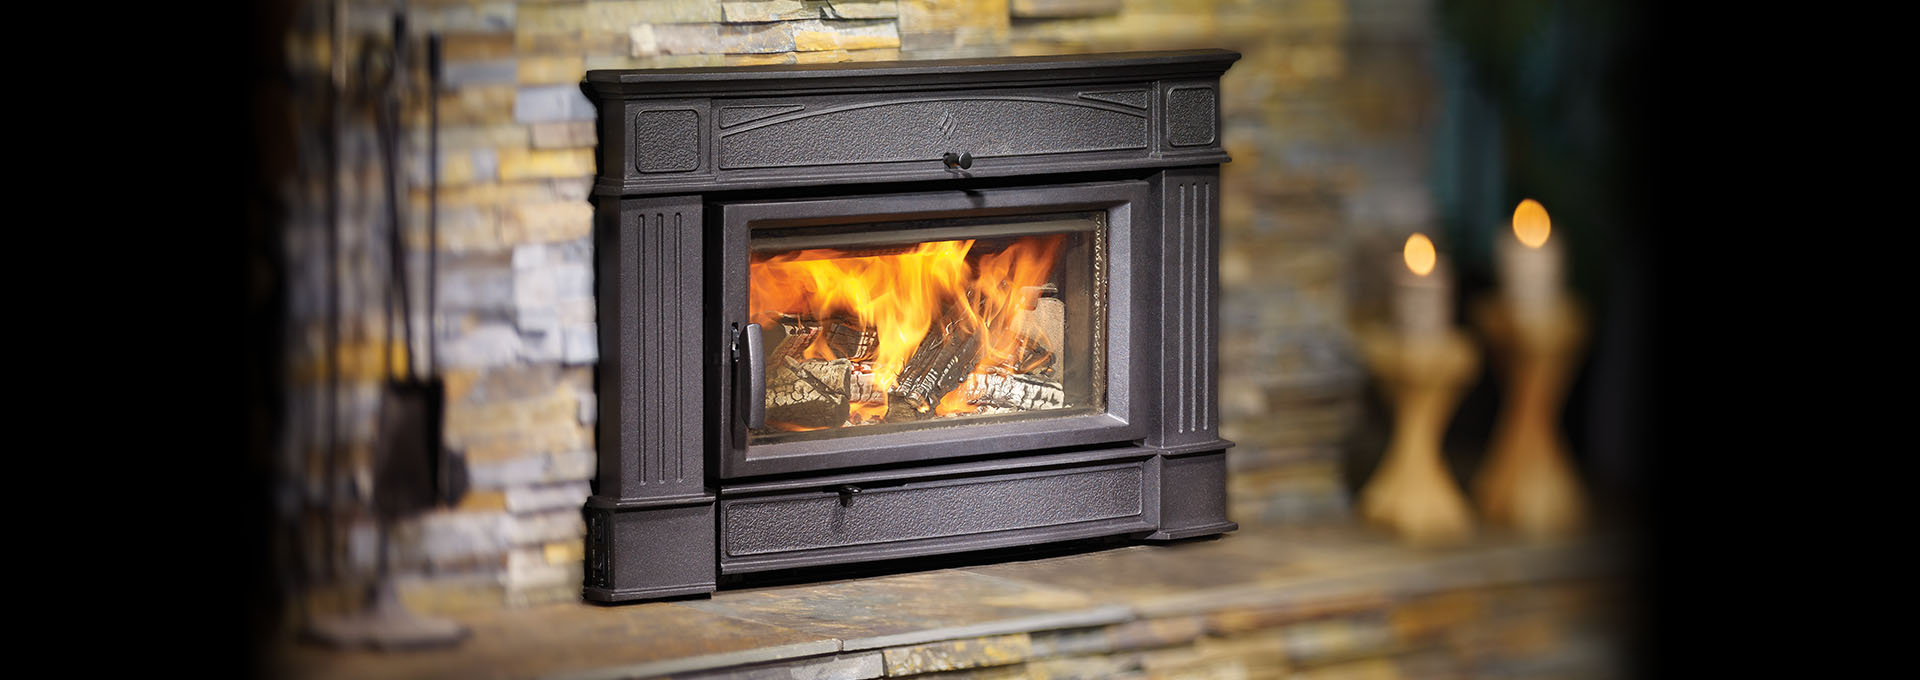 awesome stove benefits fireplace house insert of wood picture inserts